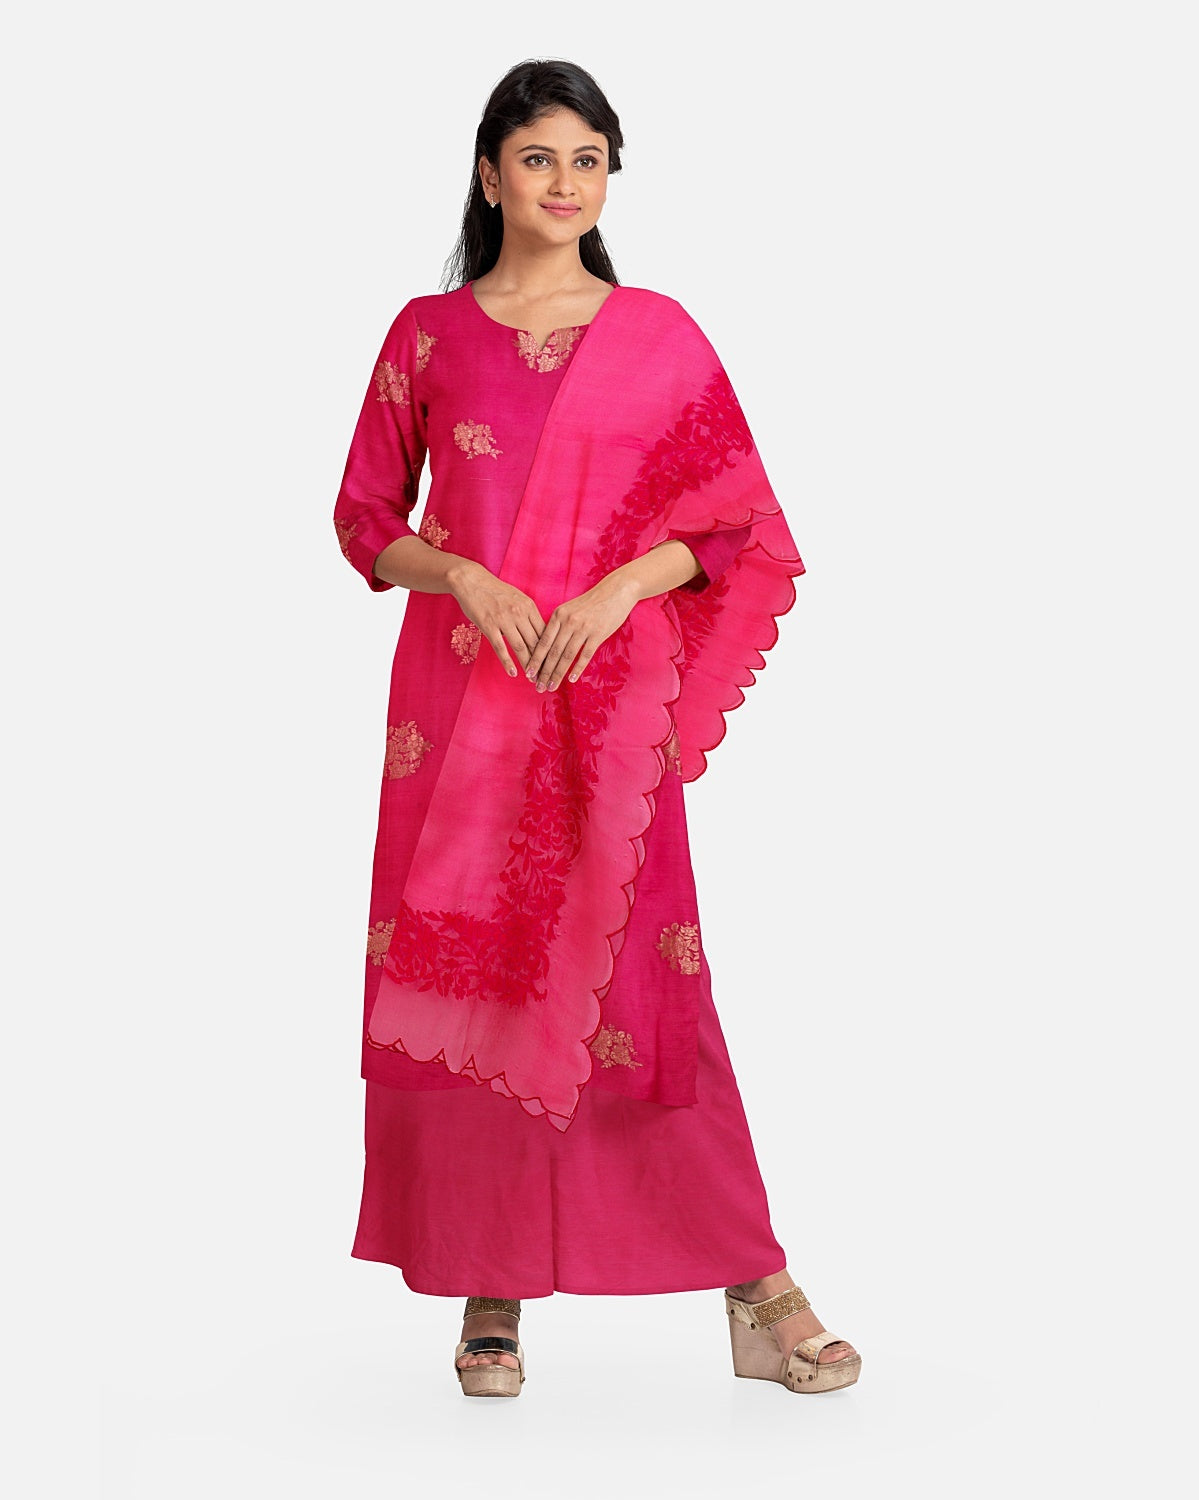 Rani Pink Zari Georgette Suit Fabric Set